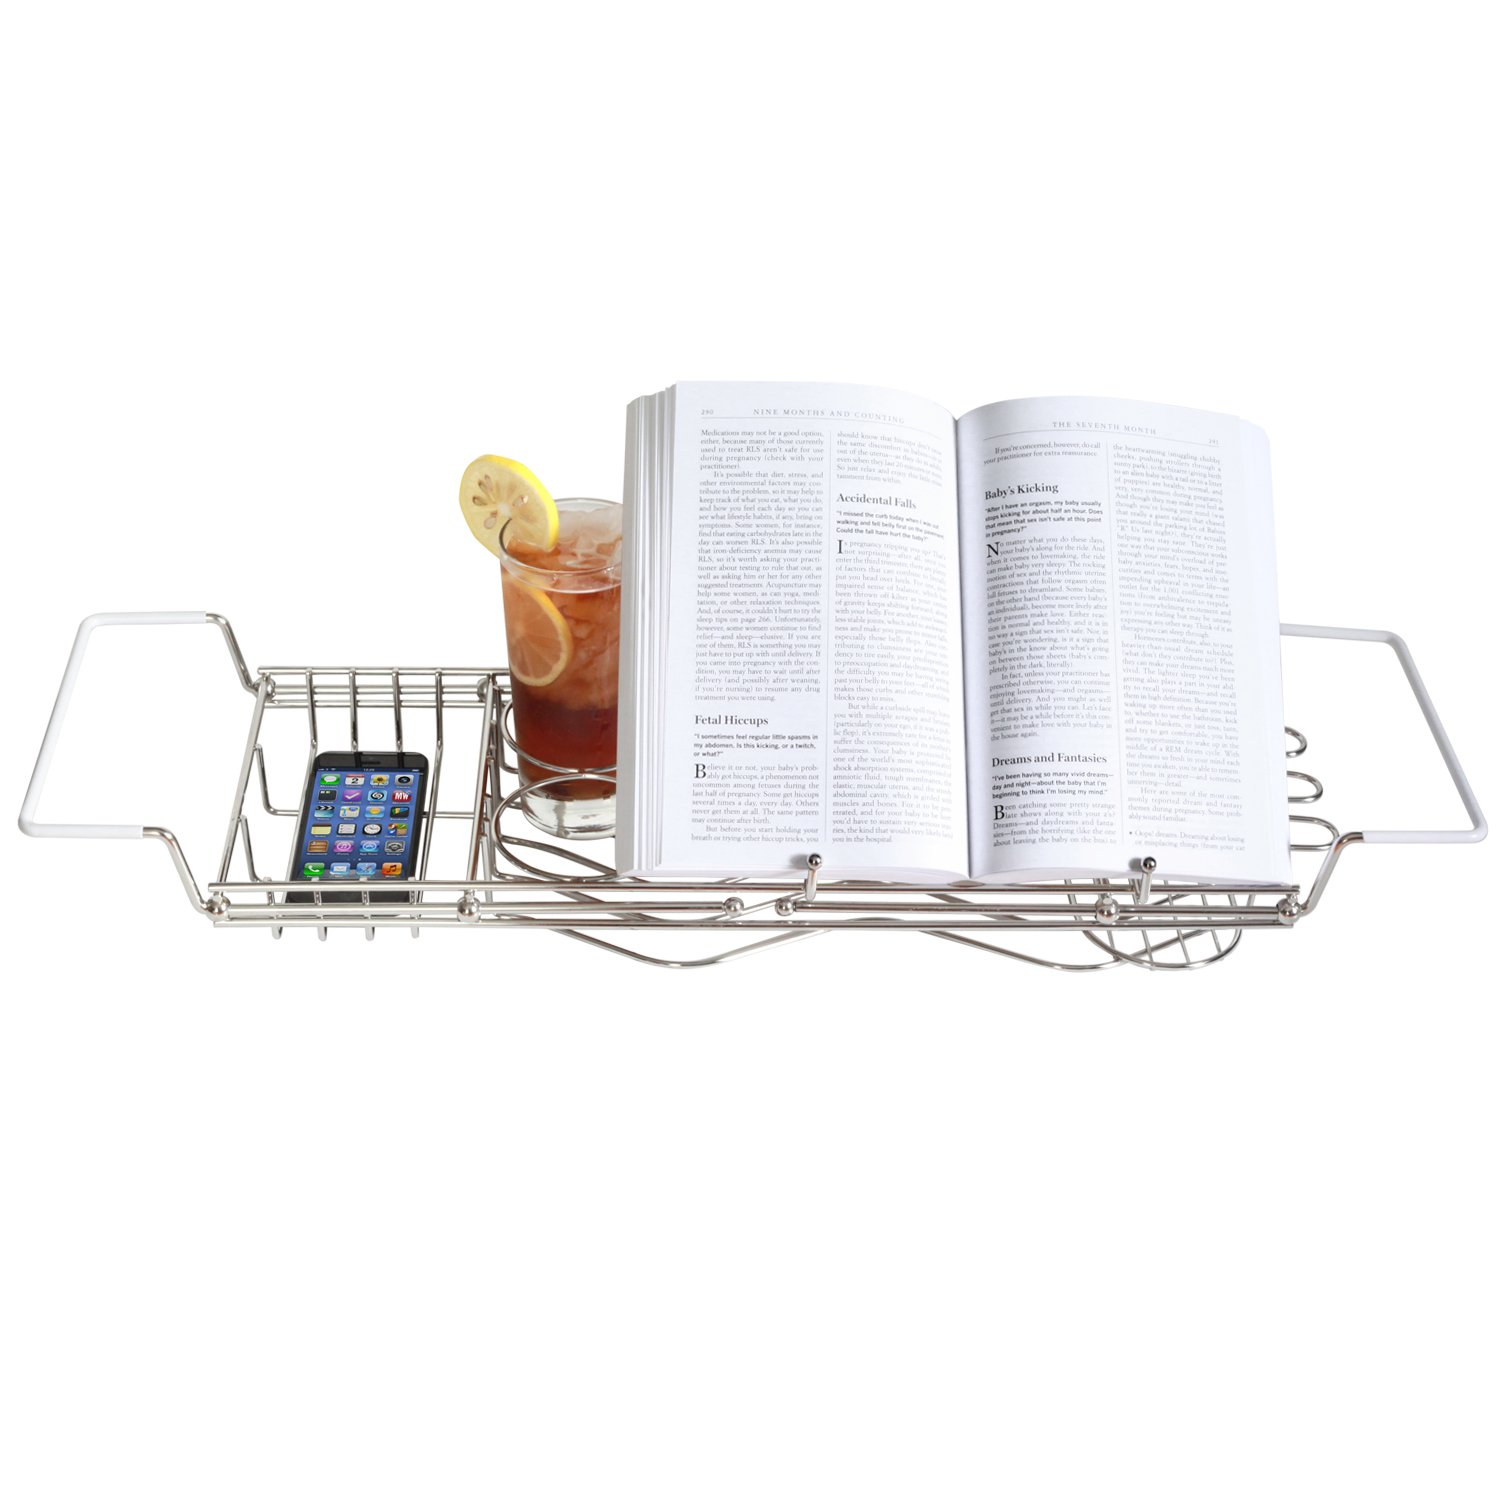 stainless steel bathtub caddy with extending sides and